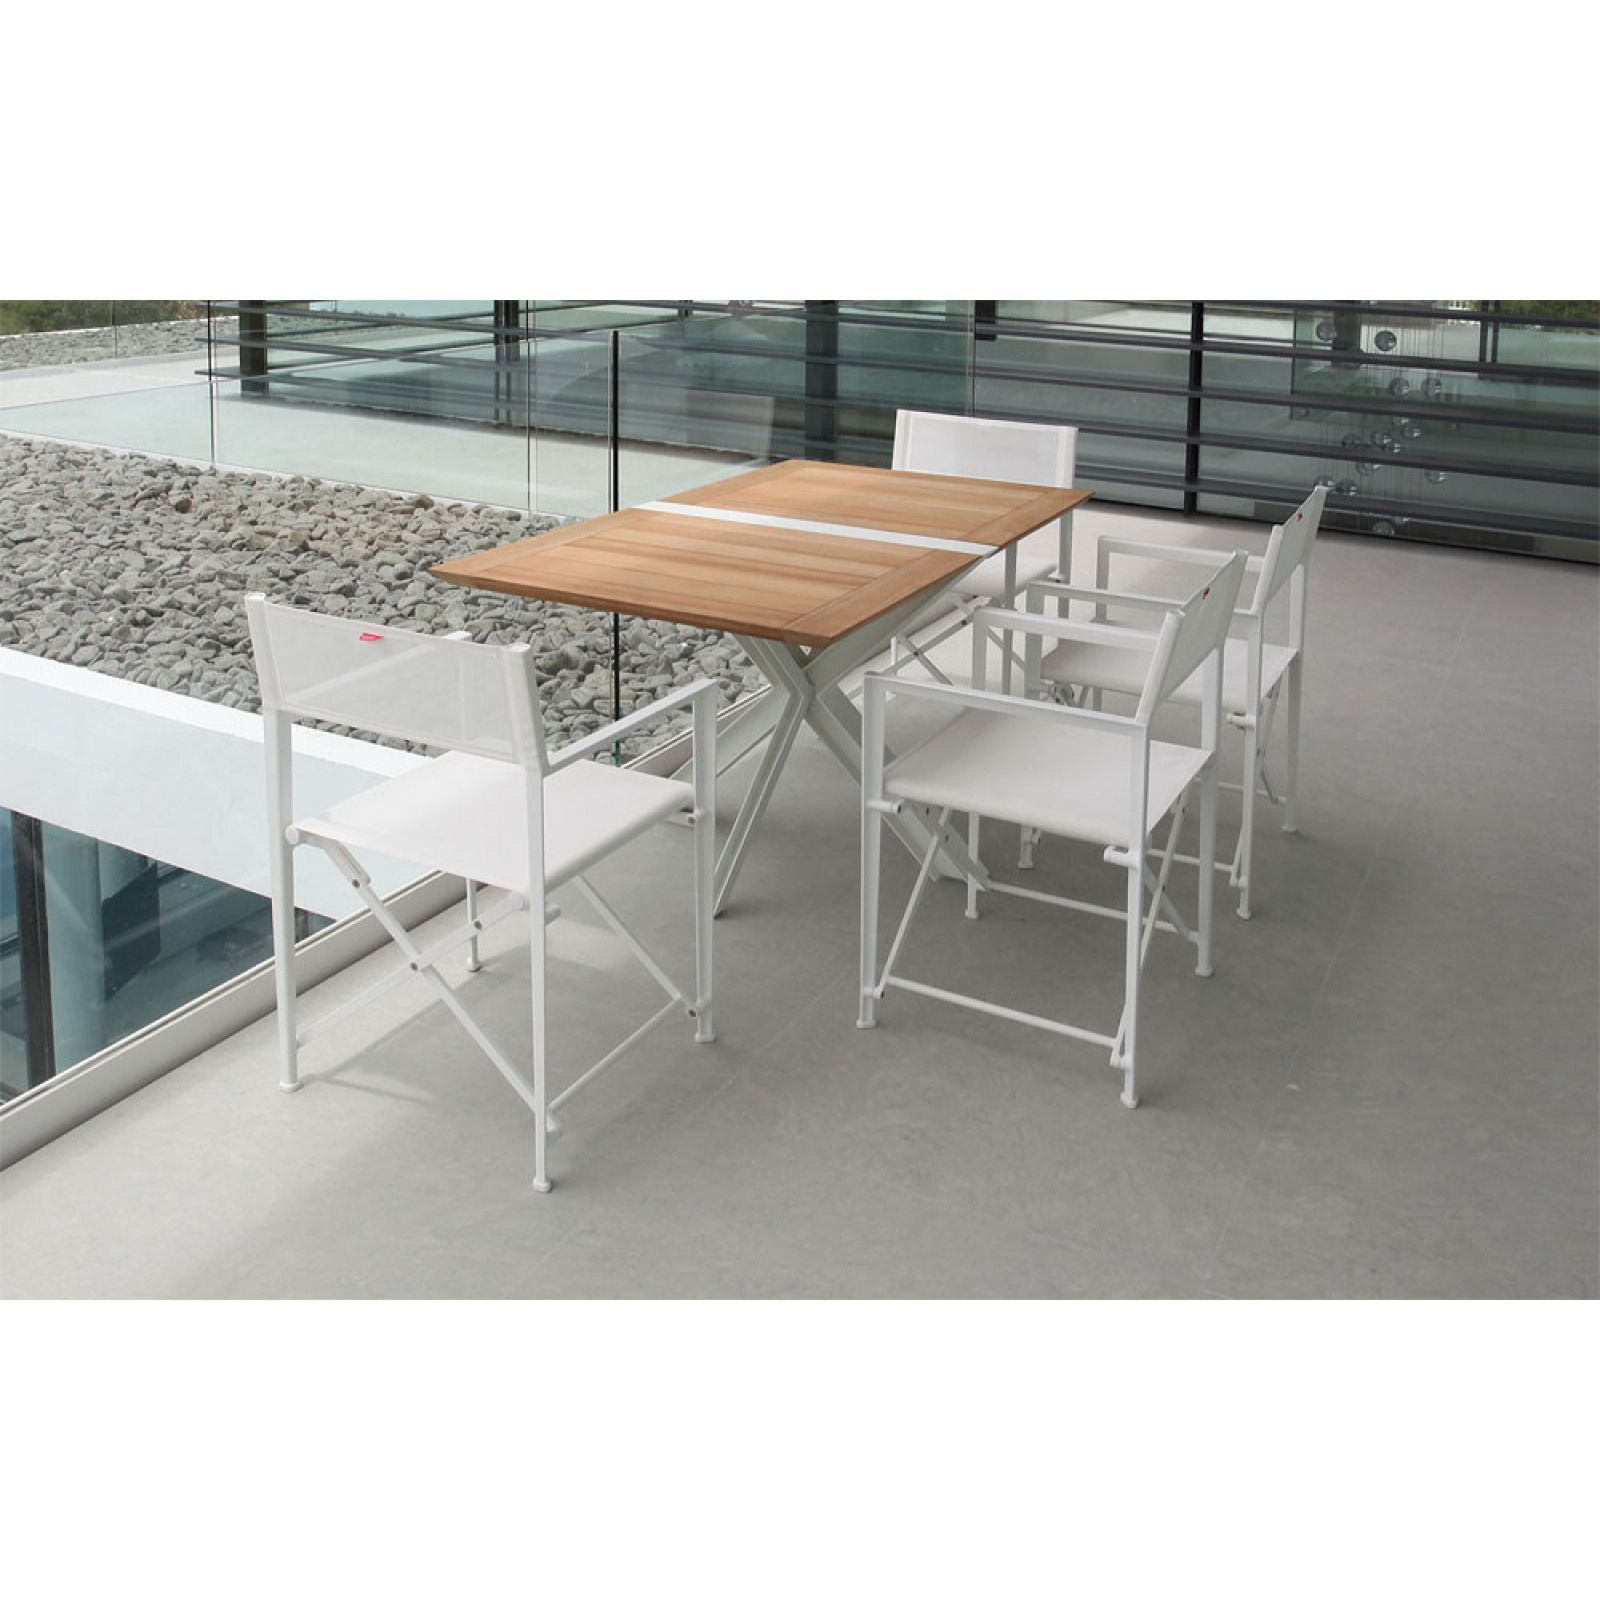 Royal Botania Red Label Klapptisch Traverse 150 cm mit Teakholzplatte